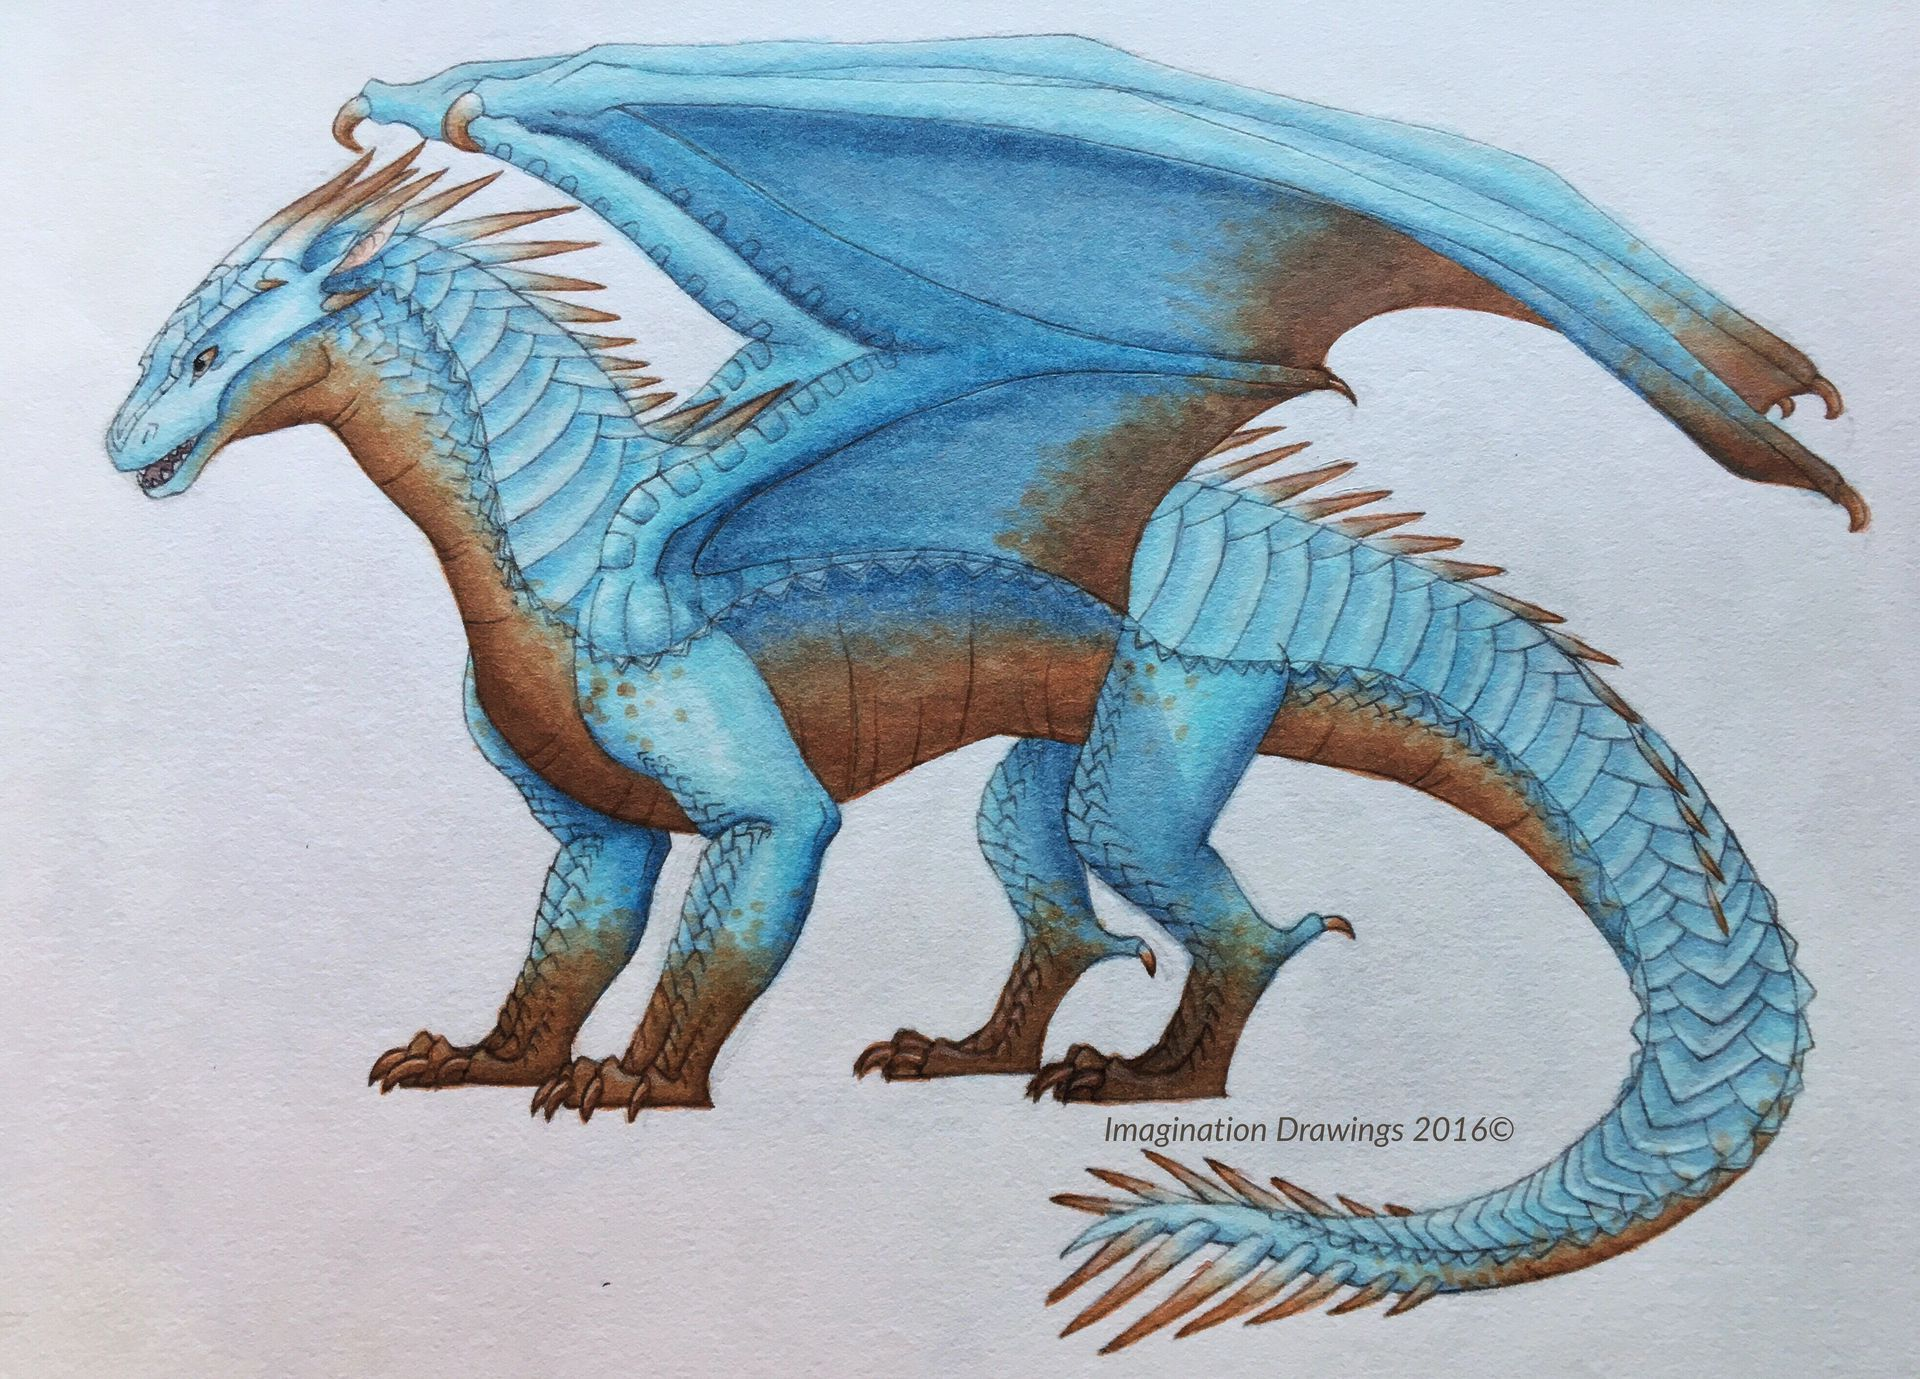 Imagination's Art Book 2015/2016 - IceWing/MudWing Hybrid in 2019